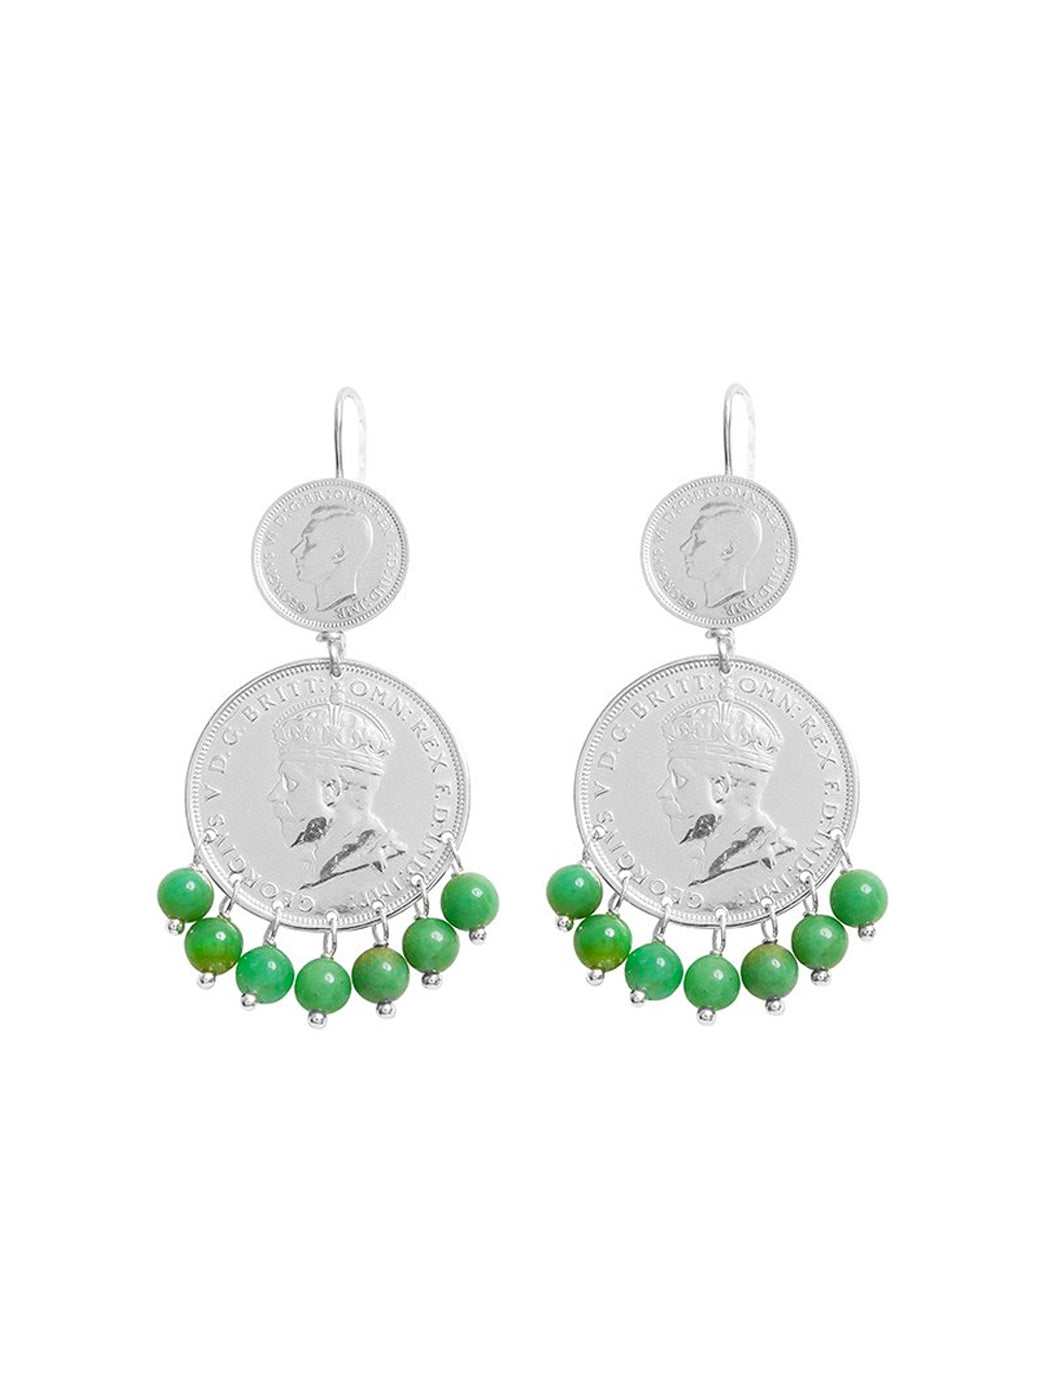 Fiorina Jewellery Mini Marrakesh Earrings Chrysoprase